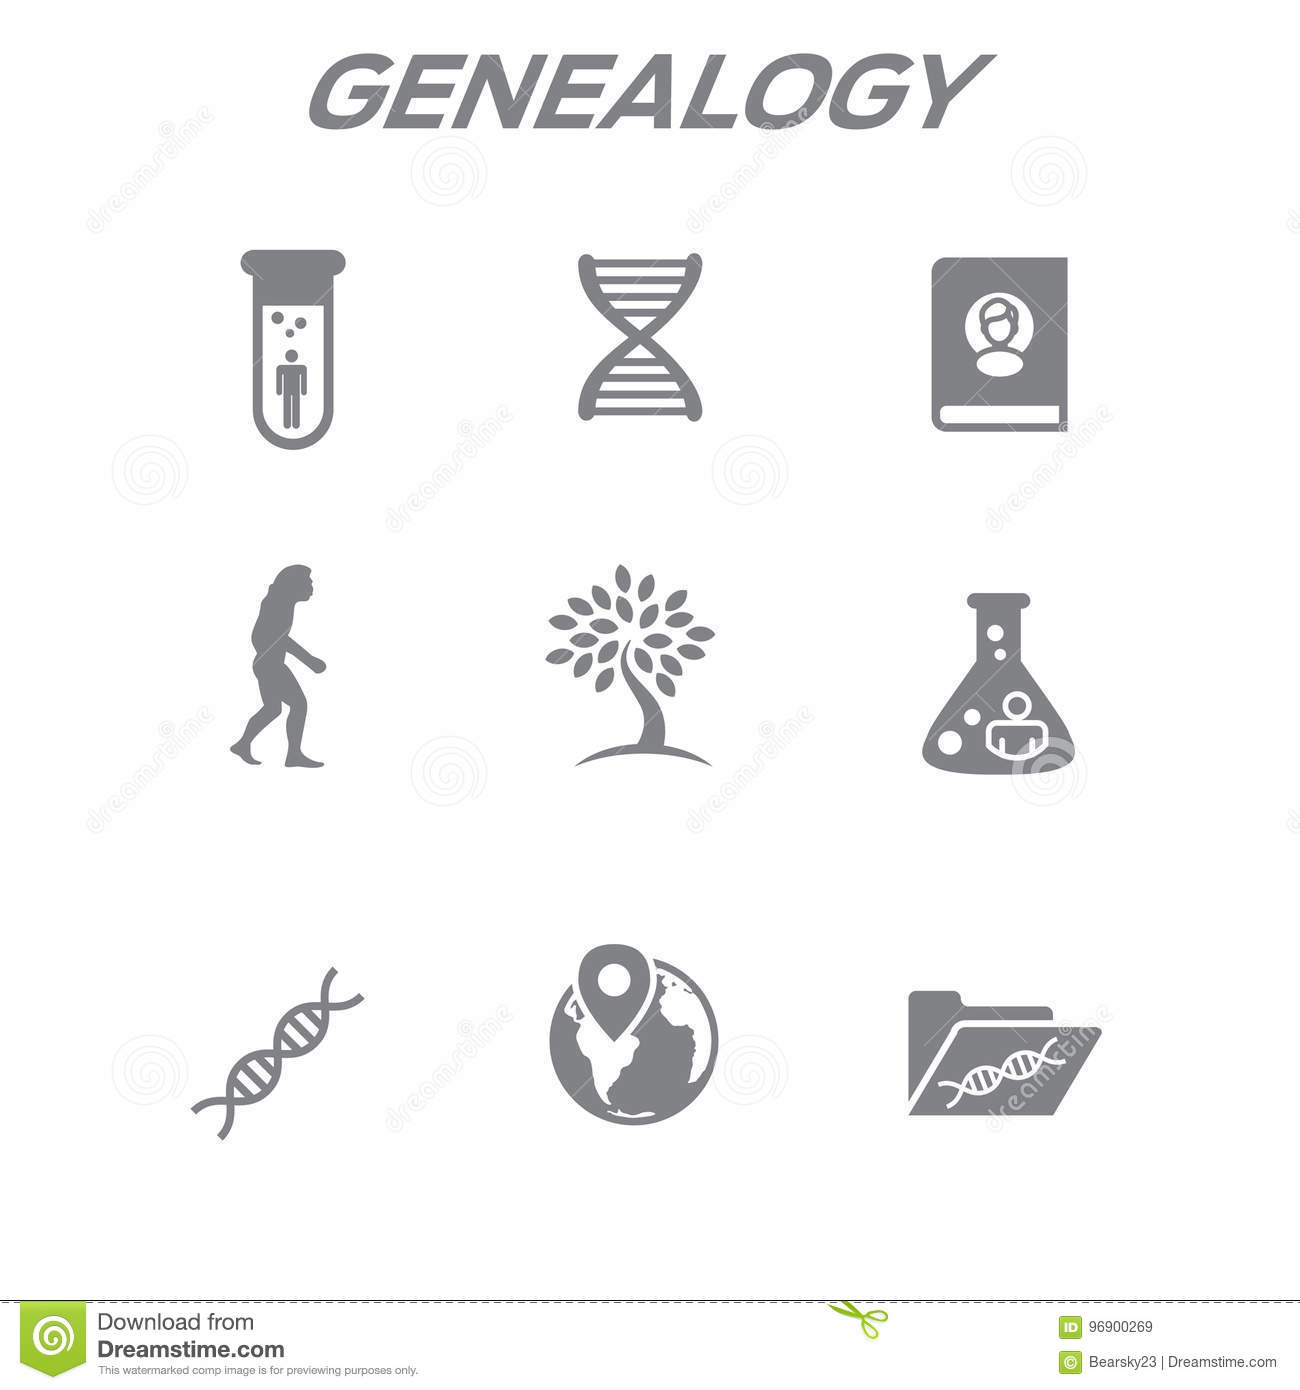 Genealogy Tree Stock Illustrations 635 Genealogy Tree